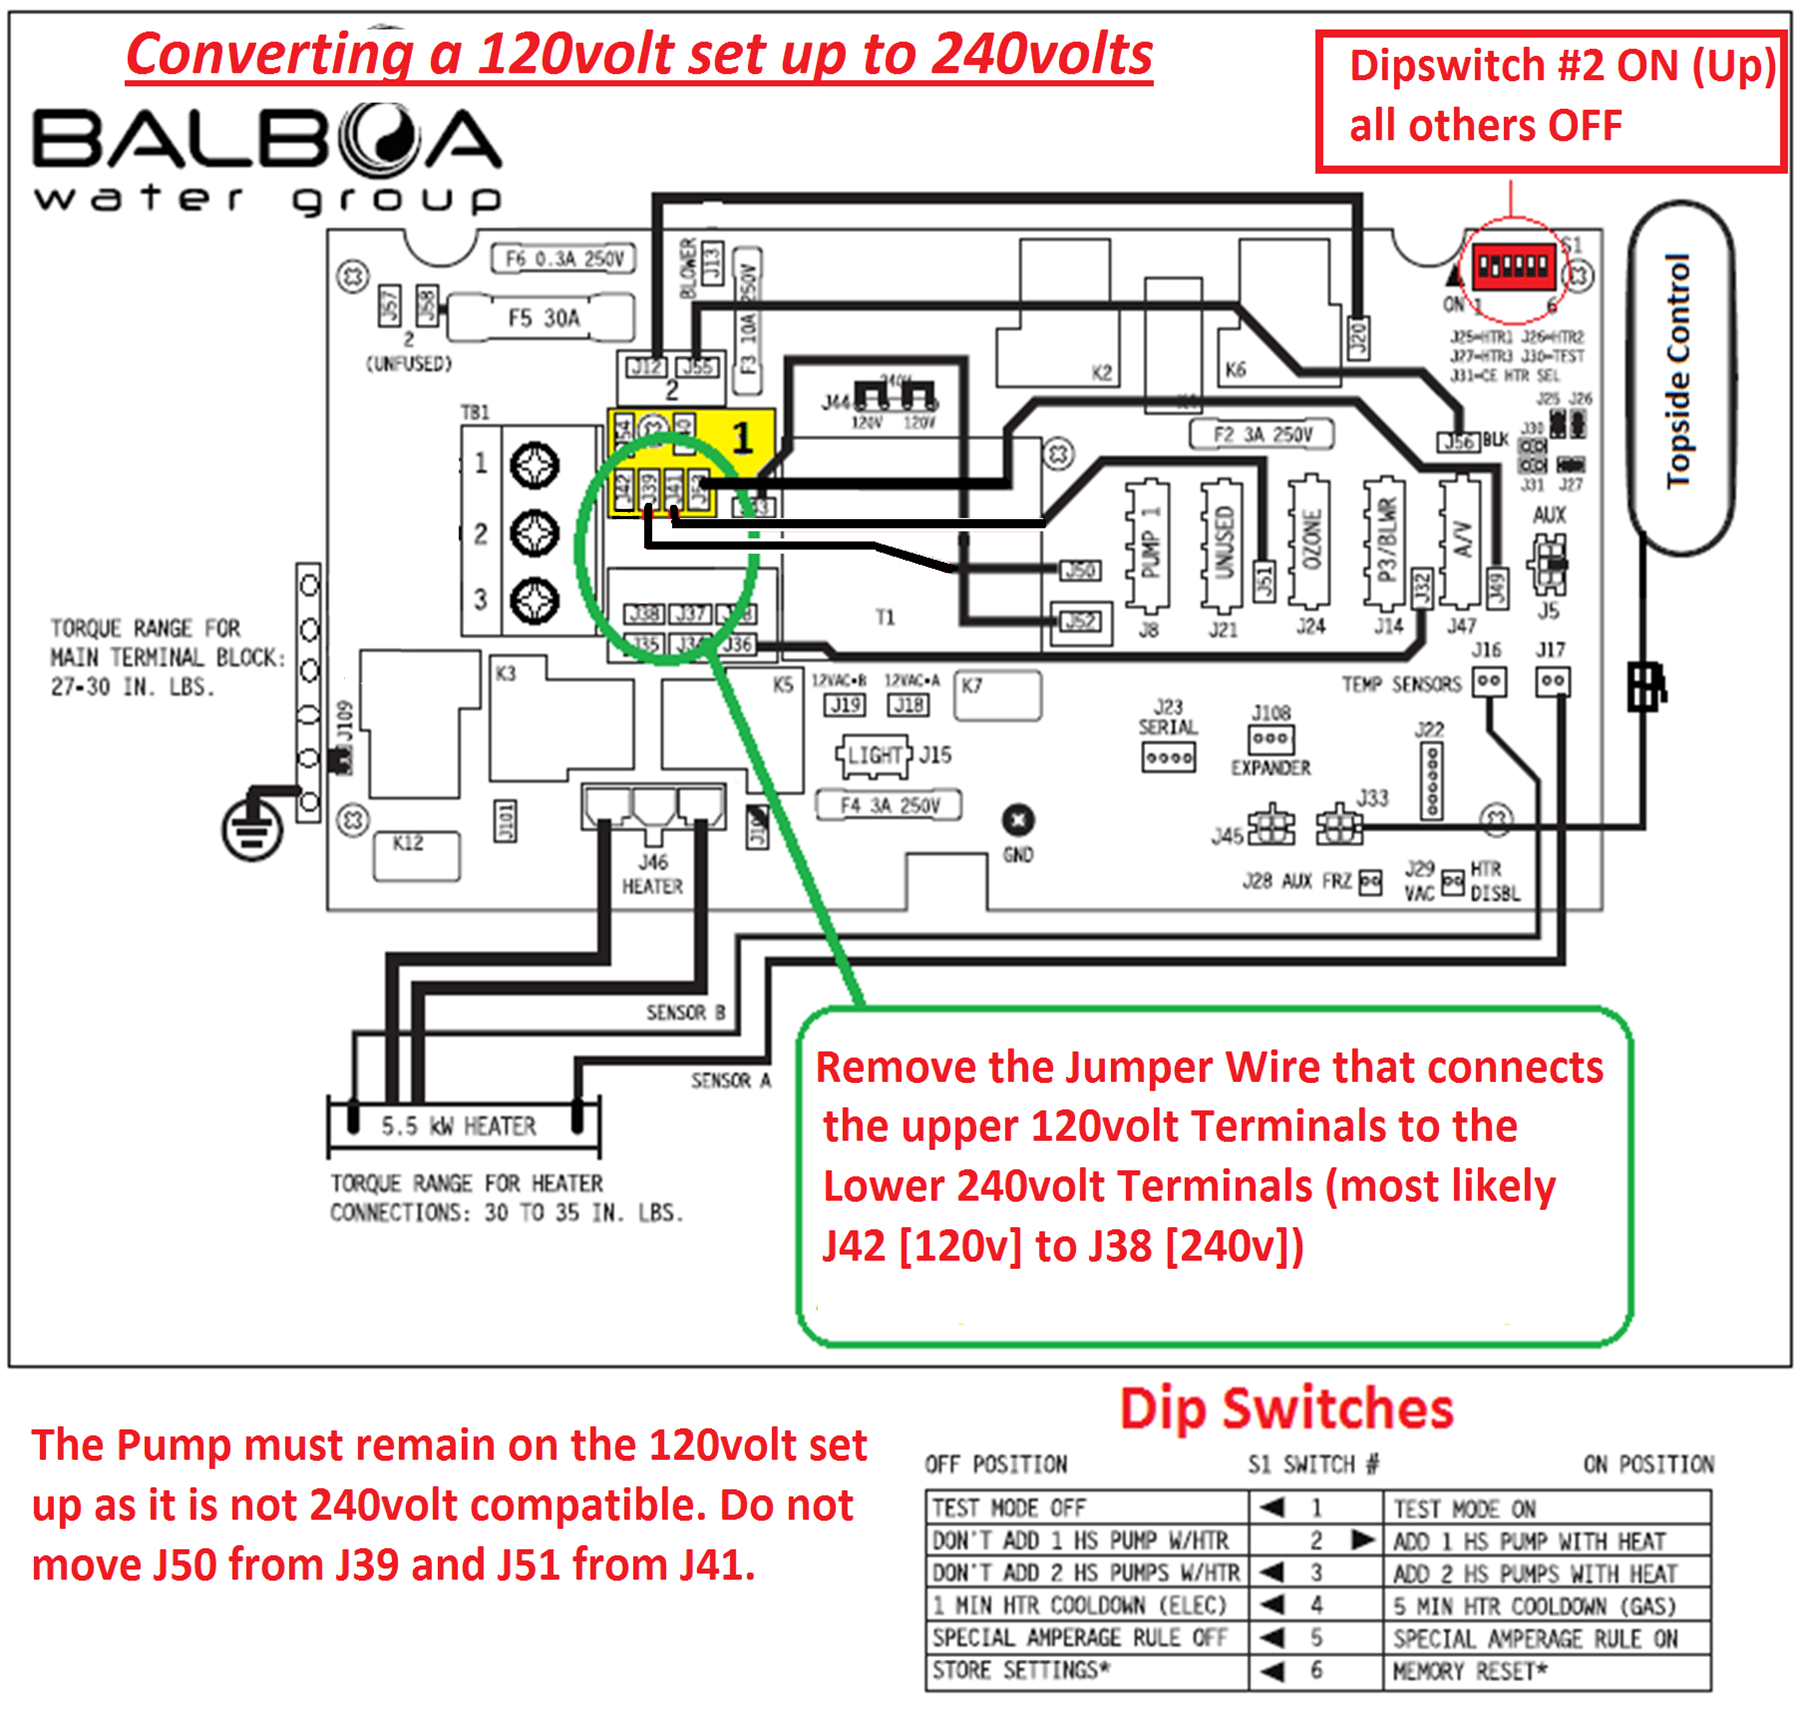 medium resolution of electrical installation converting a 120v balboa bp to 240v wiring a hot tub canada